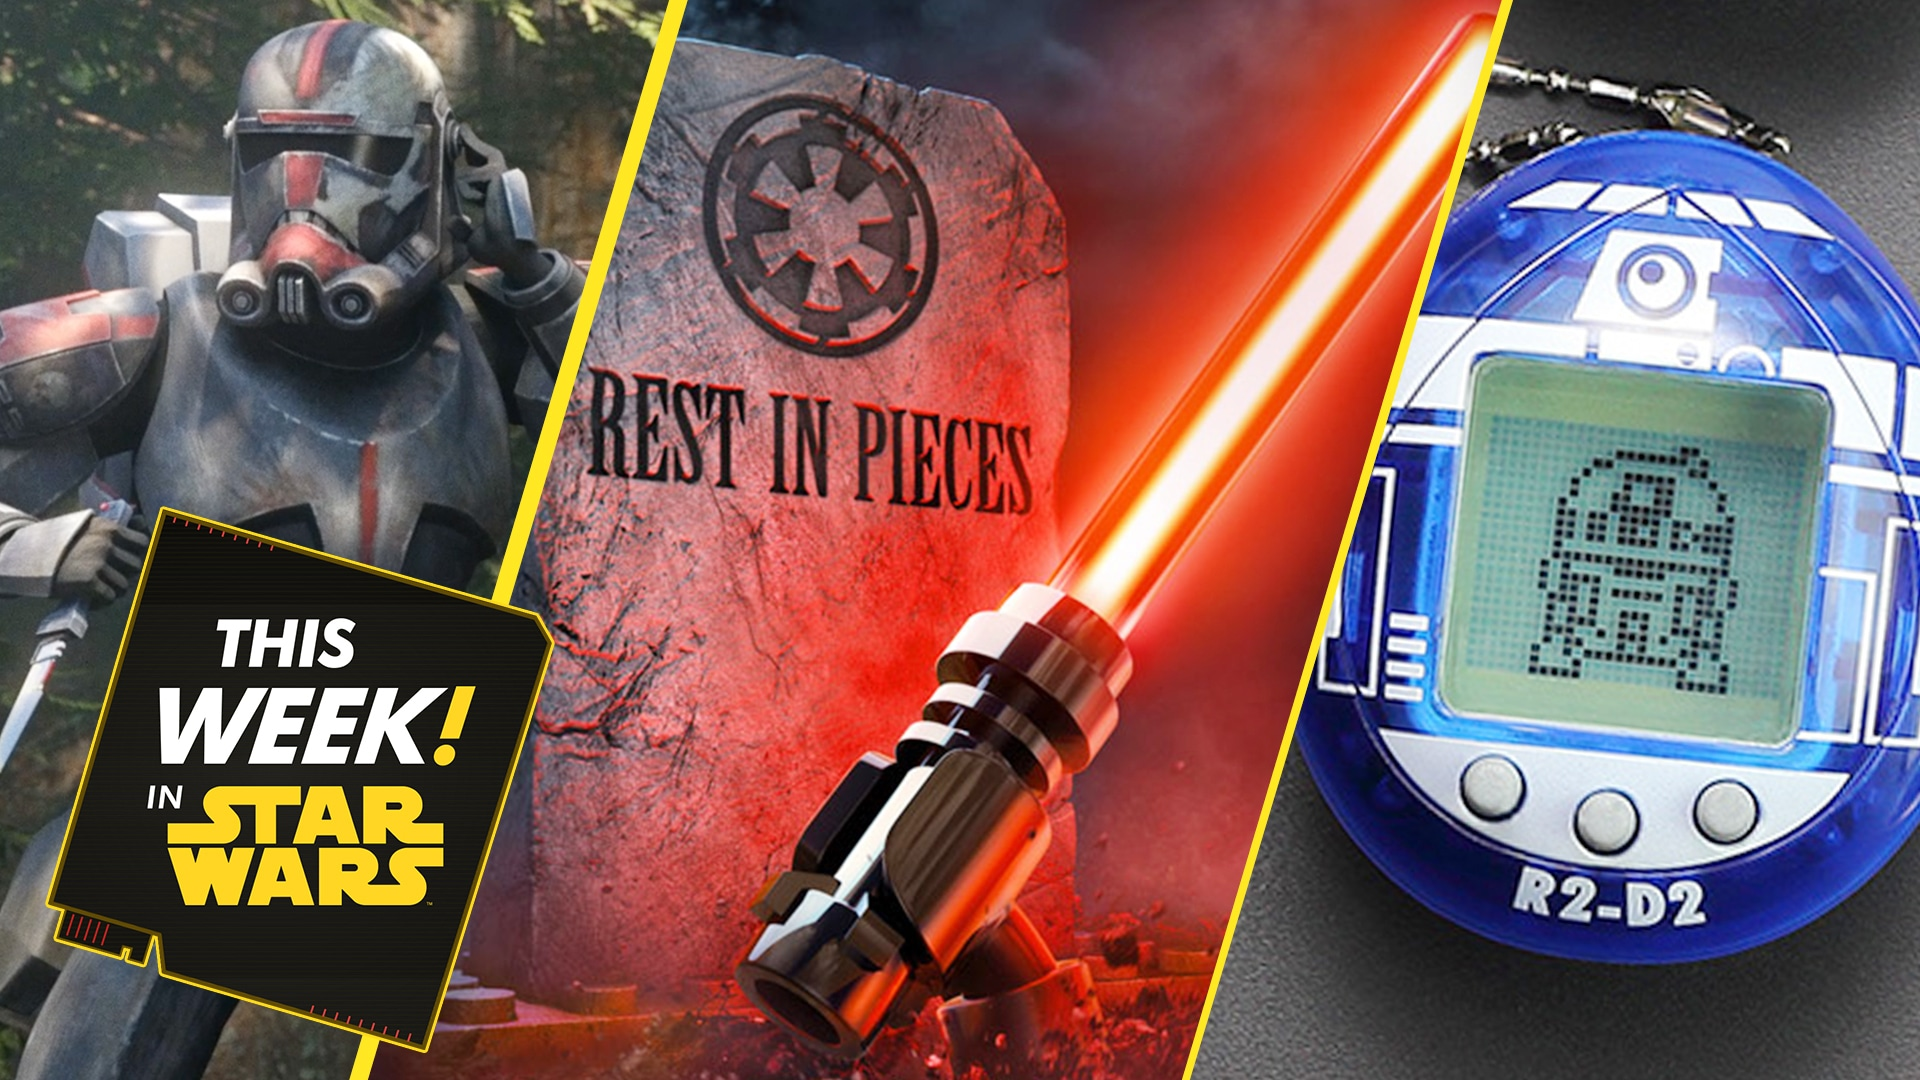 LEGO Star Wars Terrifying Tales, Tamagotchi R2-D2 Revealed, and More!